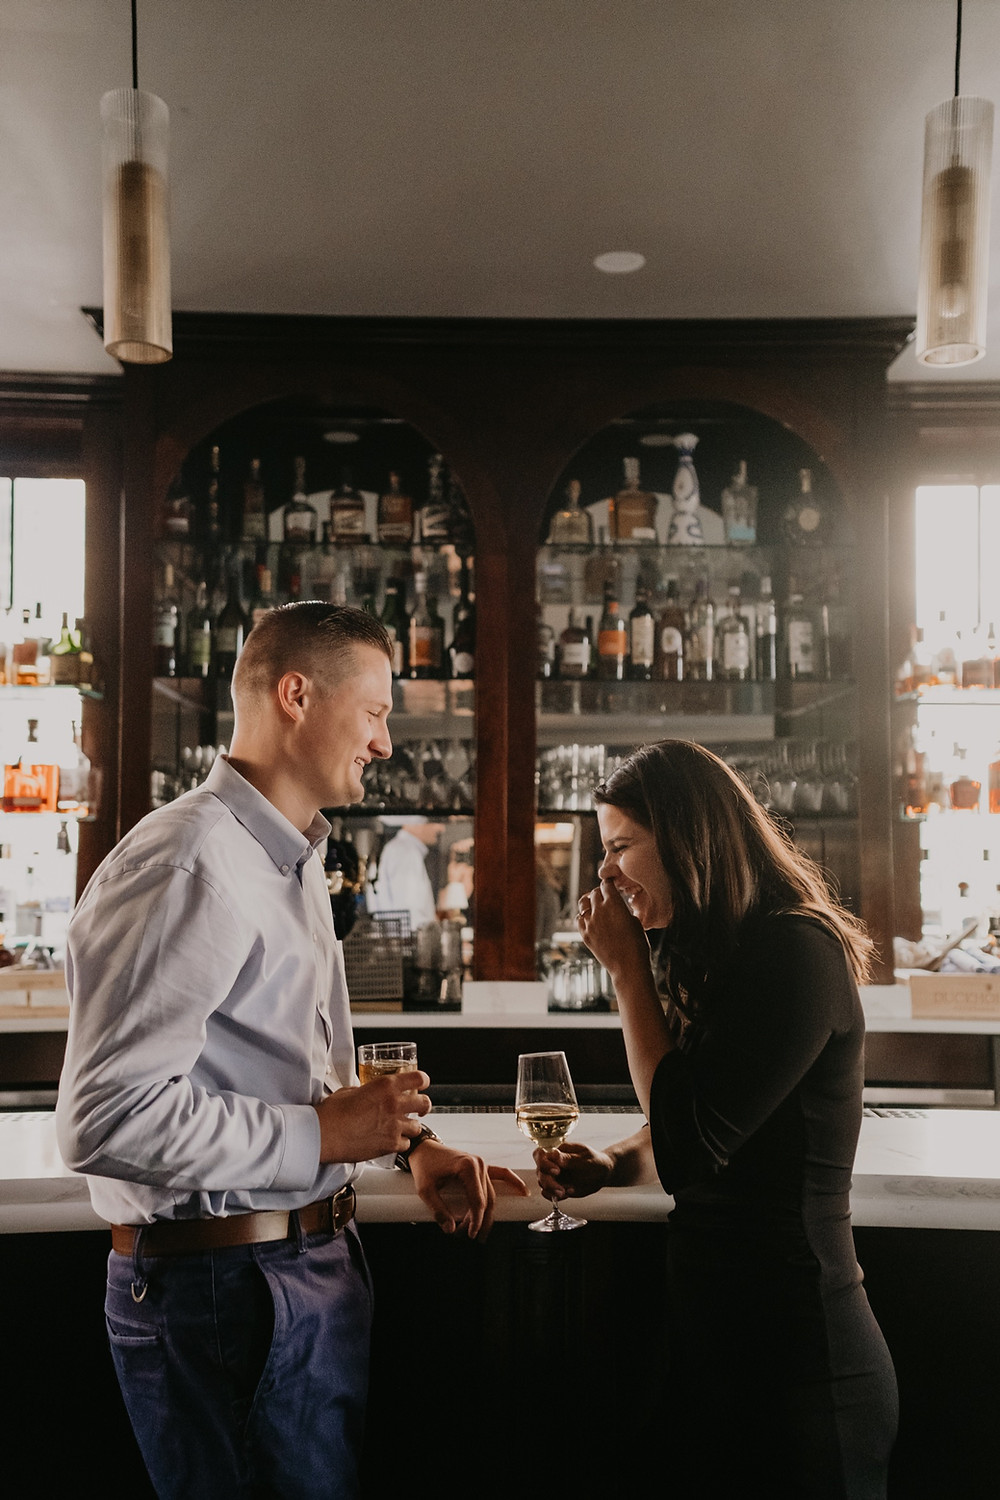 Engagement photos at The Monarch Club in Detroit. Photographed by Nicole Leanne Photography.